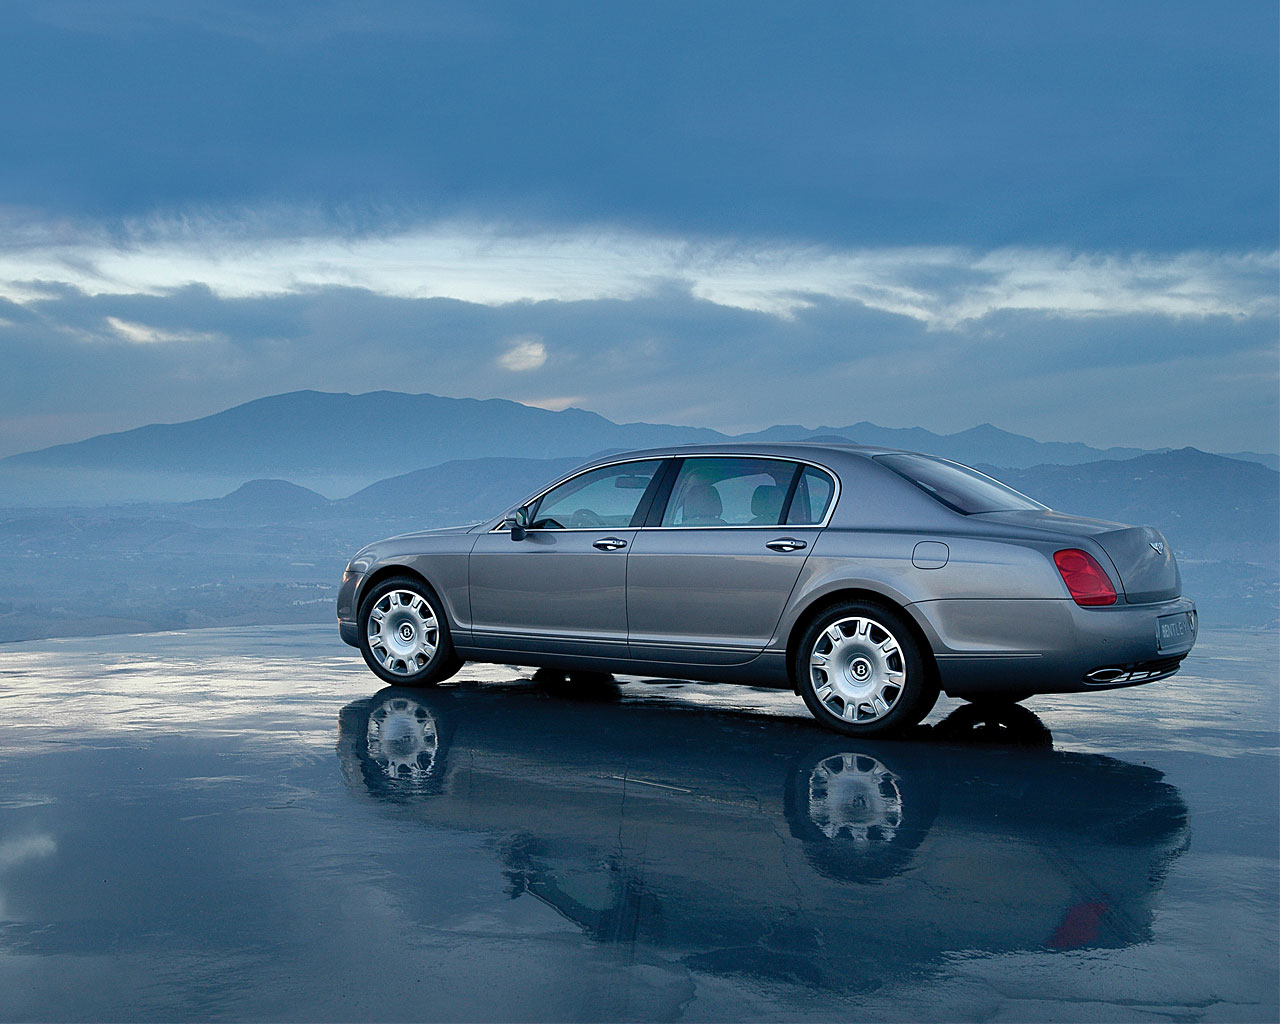 Обои на рабочий стол Bentley Continental Flying Spur back1 1280x1024